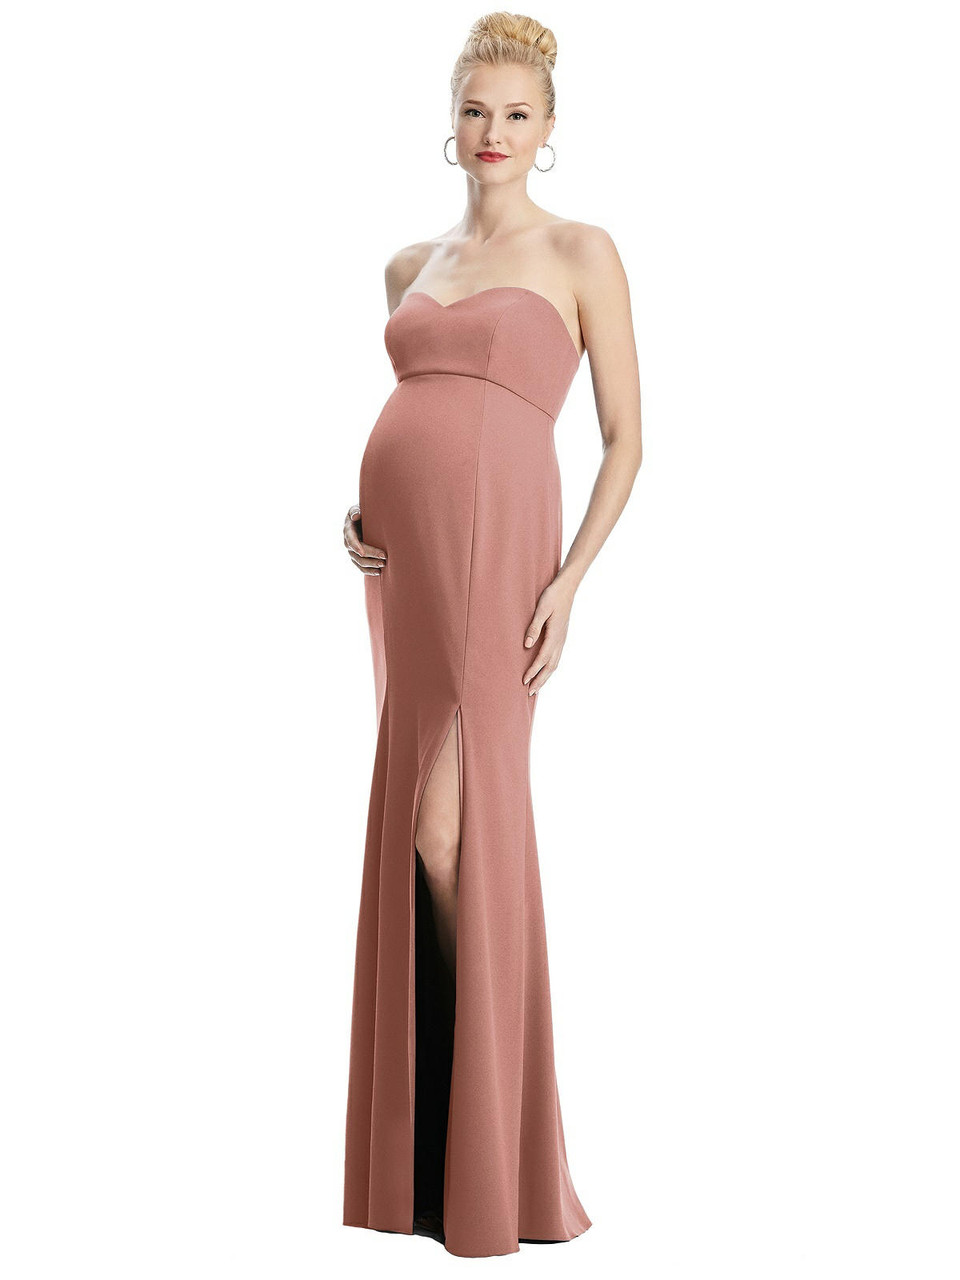 Maternity Style M440  |  Crepe - Strapless Crepe Maternity Dress with Trumpet Skirt